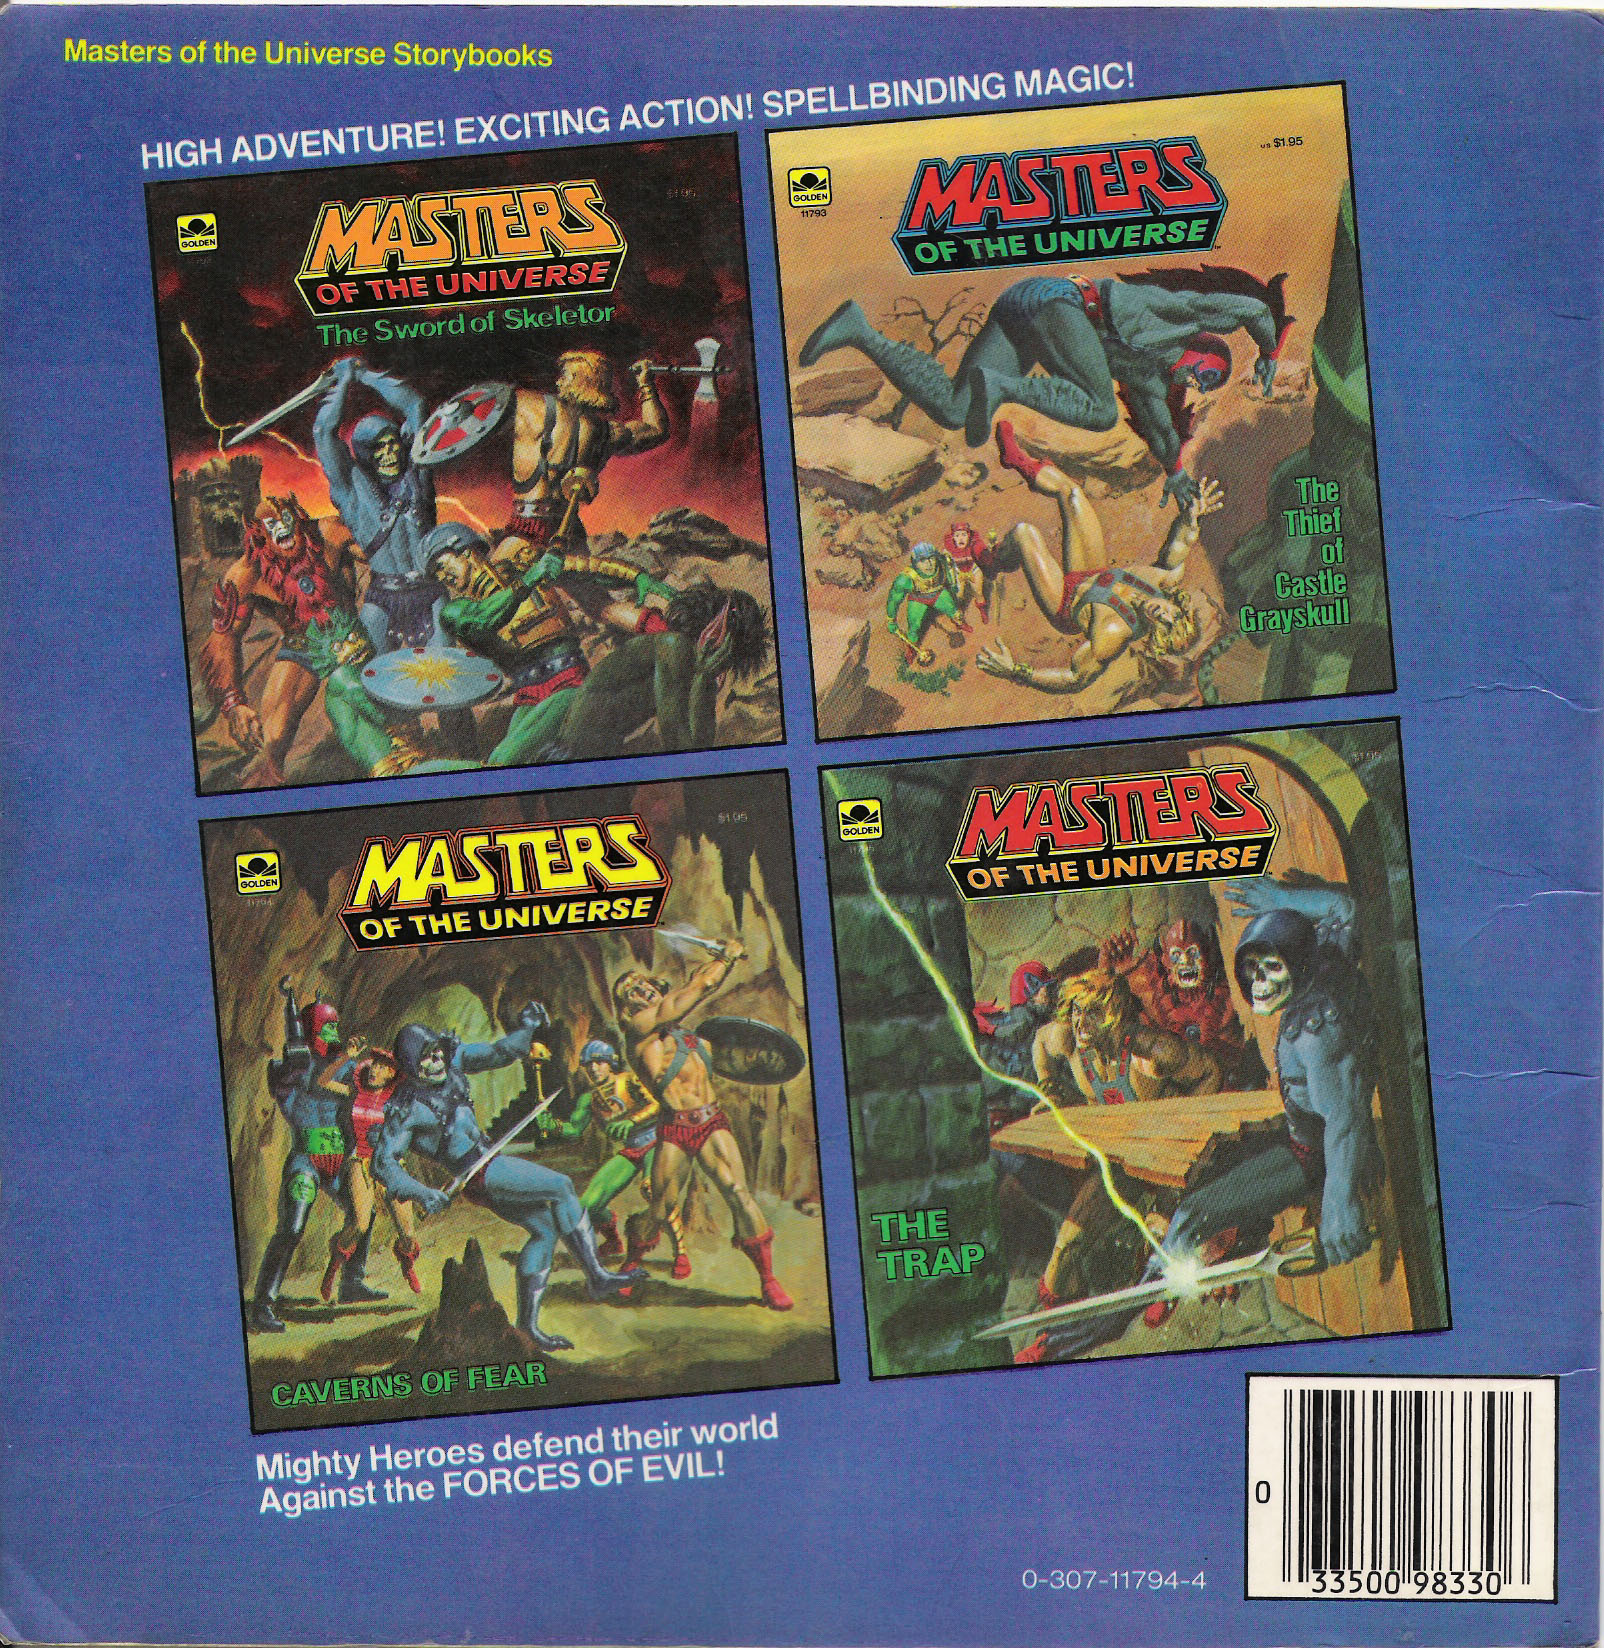 He Man Org Gt Publishing Gt Books Gt Golden Storybooks 1983